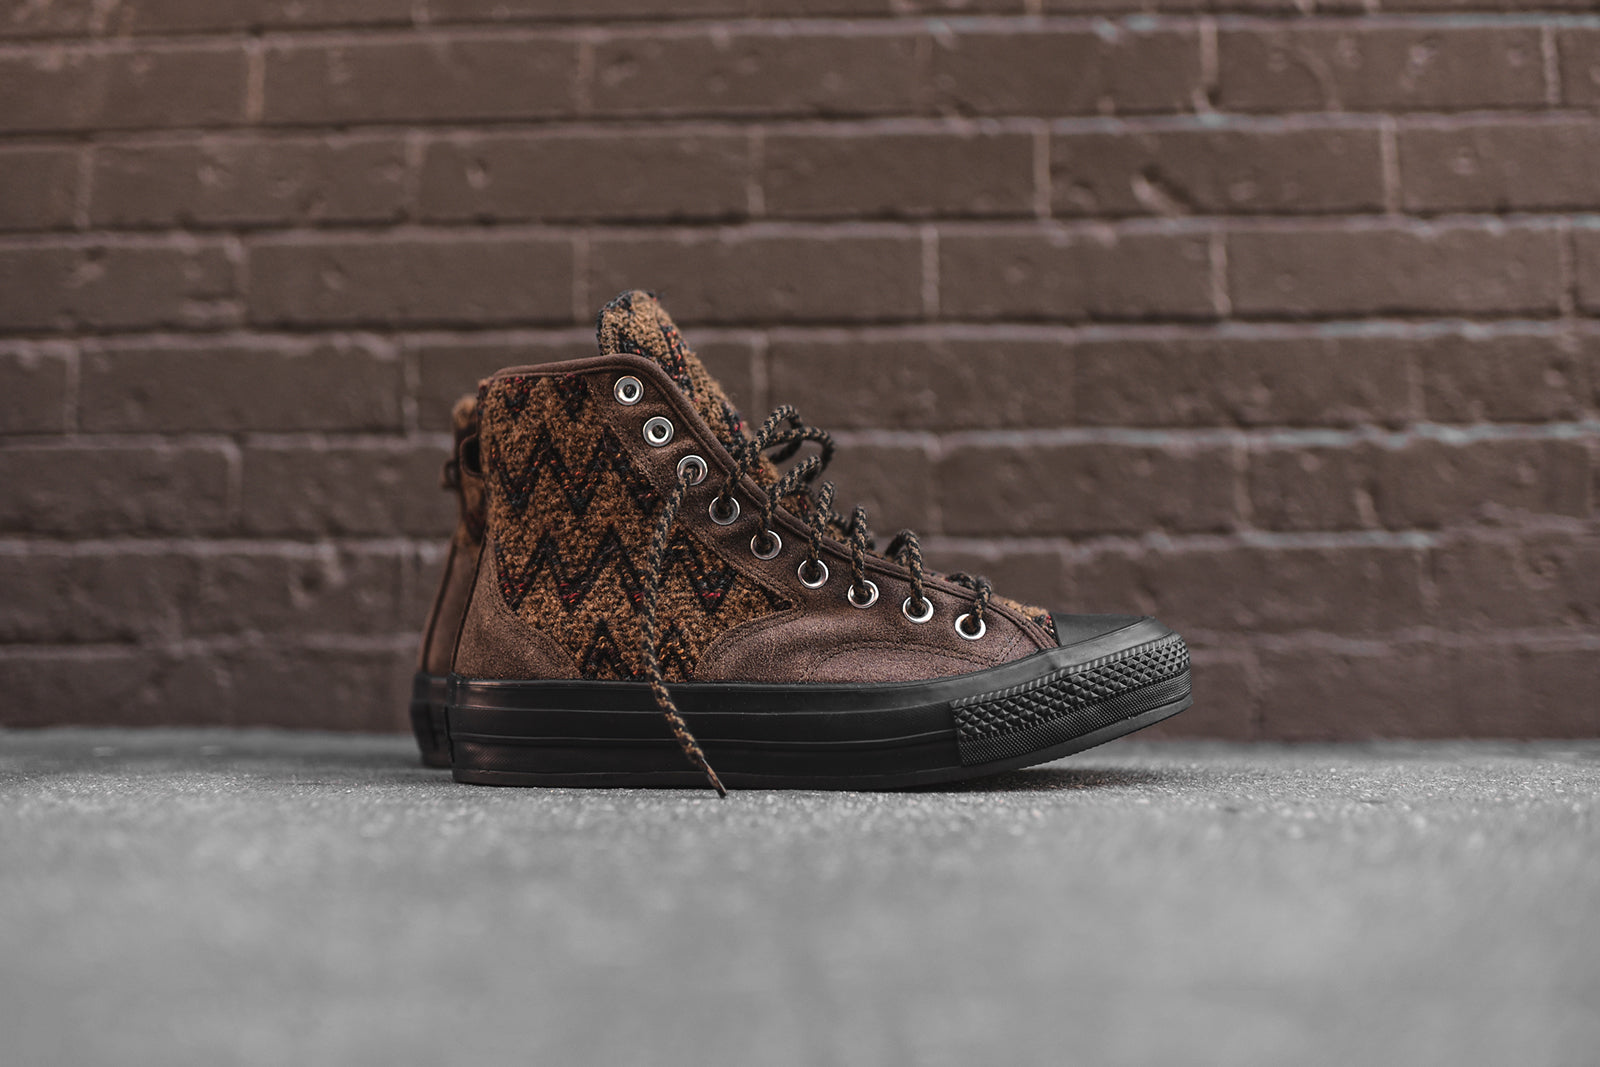 eba97863d93b Converse x Missoni Chuck Taylor All-Star High 1970 Hiker - Olive   Brown.  November 08